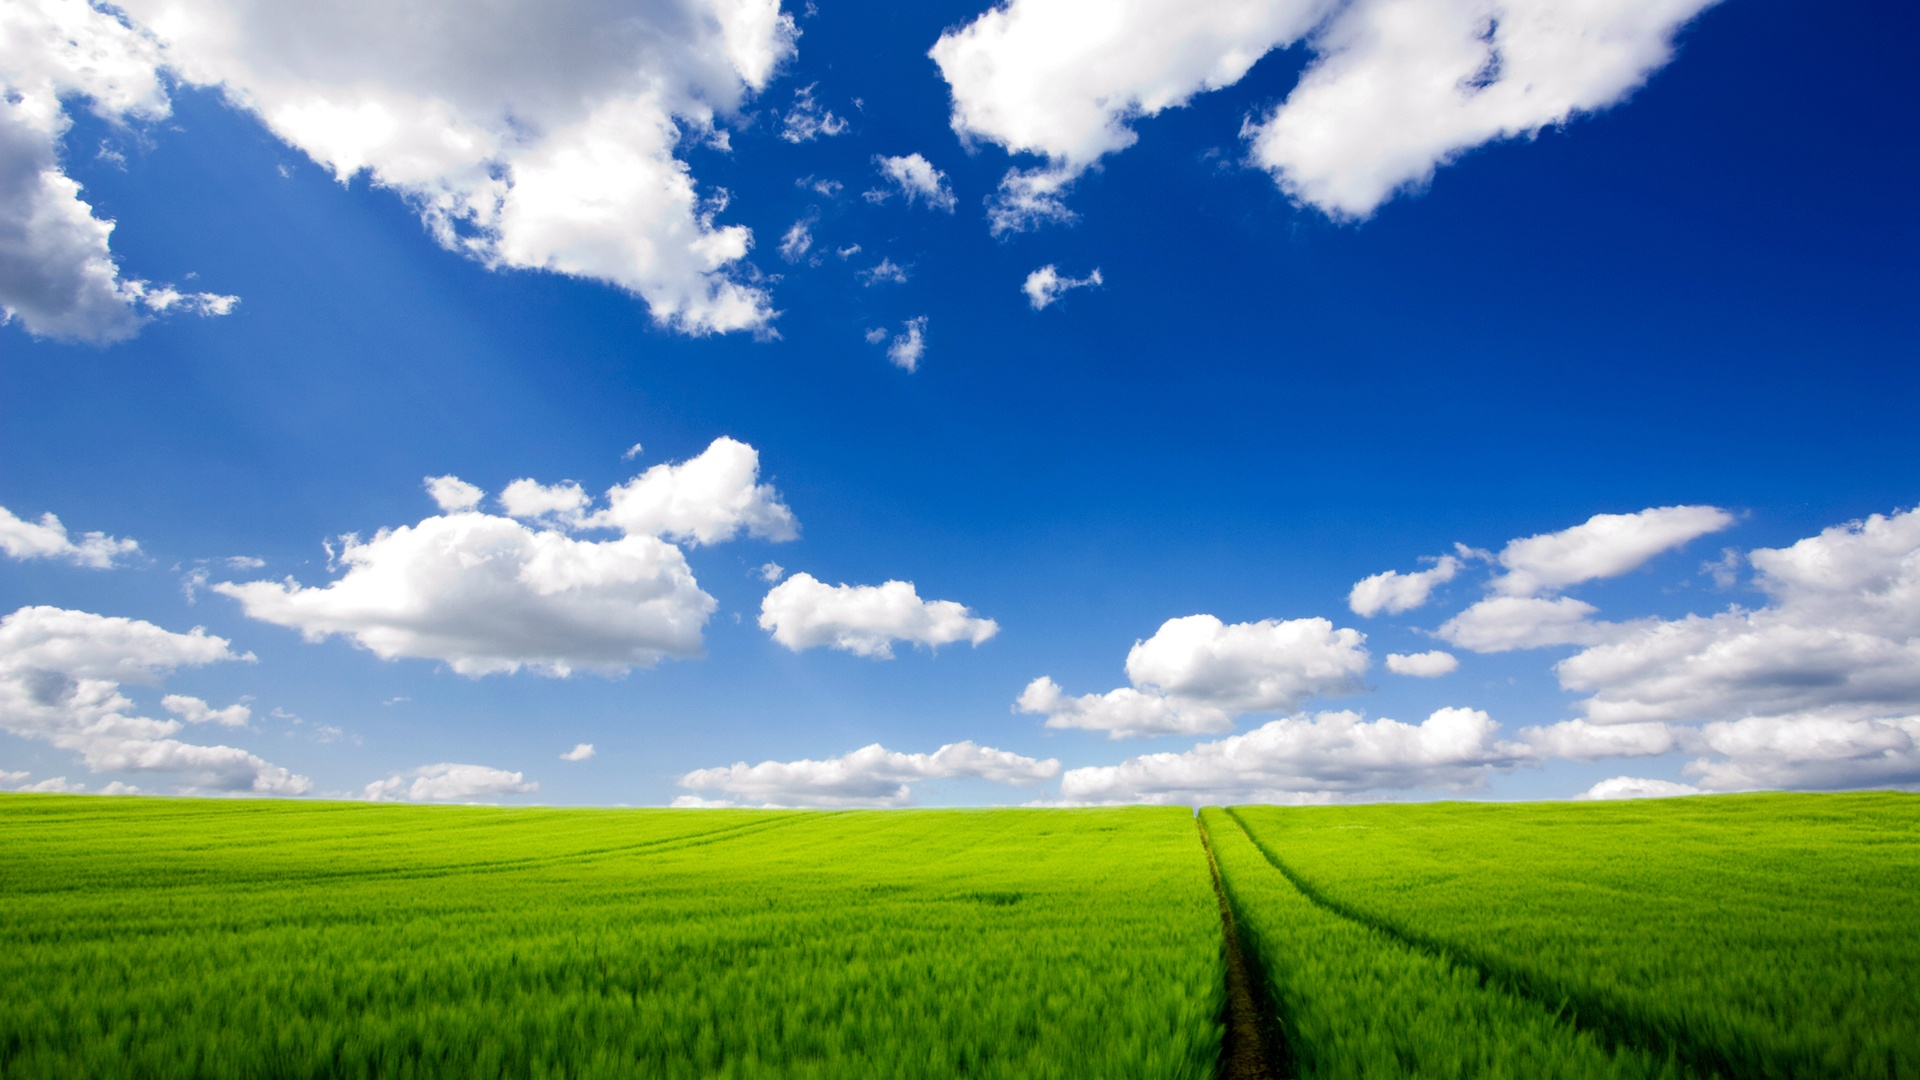 ... Windows XP wallpapers 4 ...